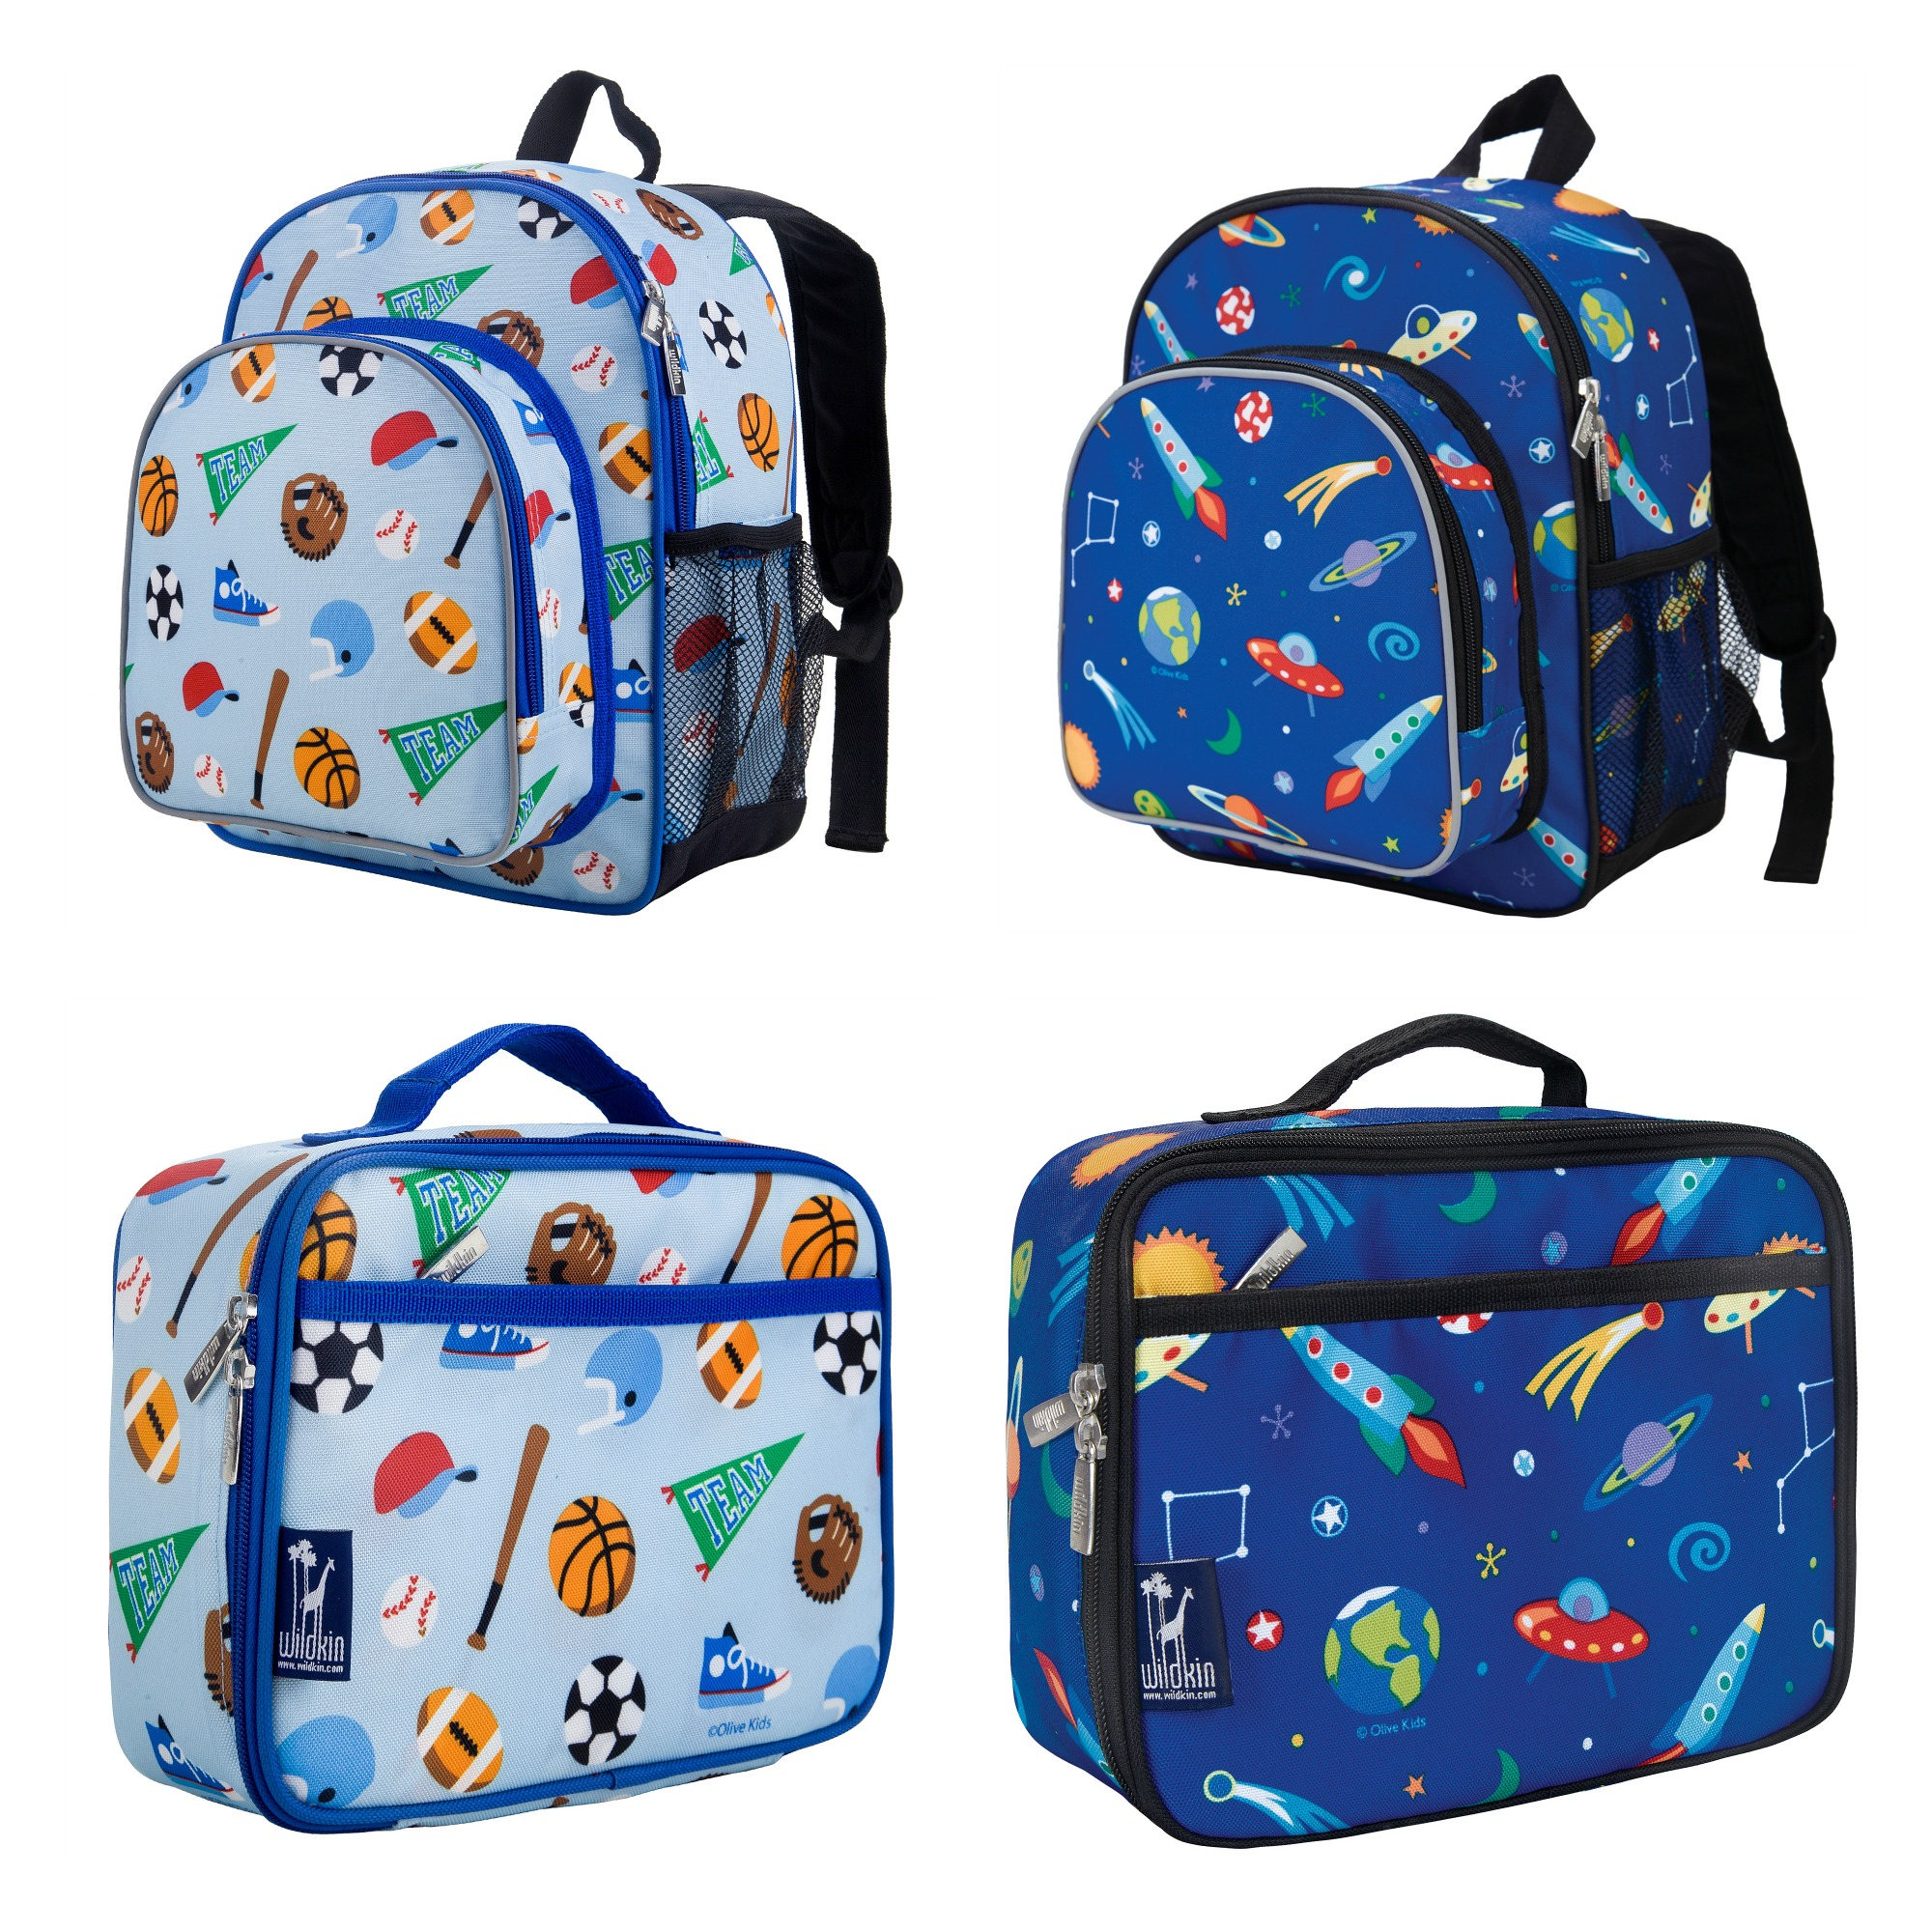 f630cc54f991 2018 Pre Schol Personalized Backpack and Lunch Box Sets